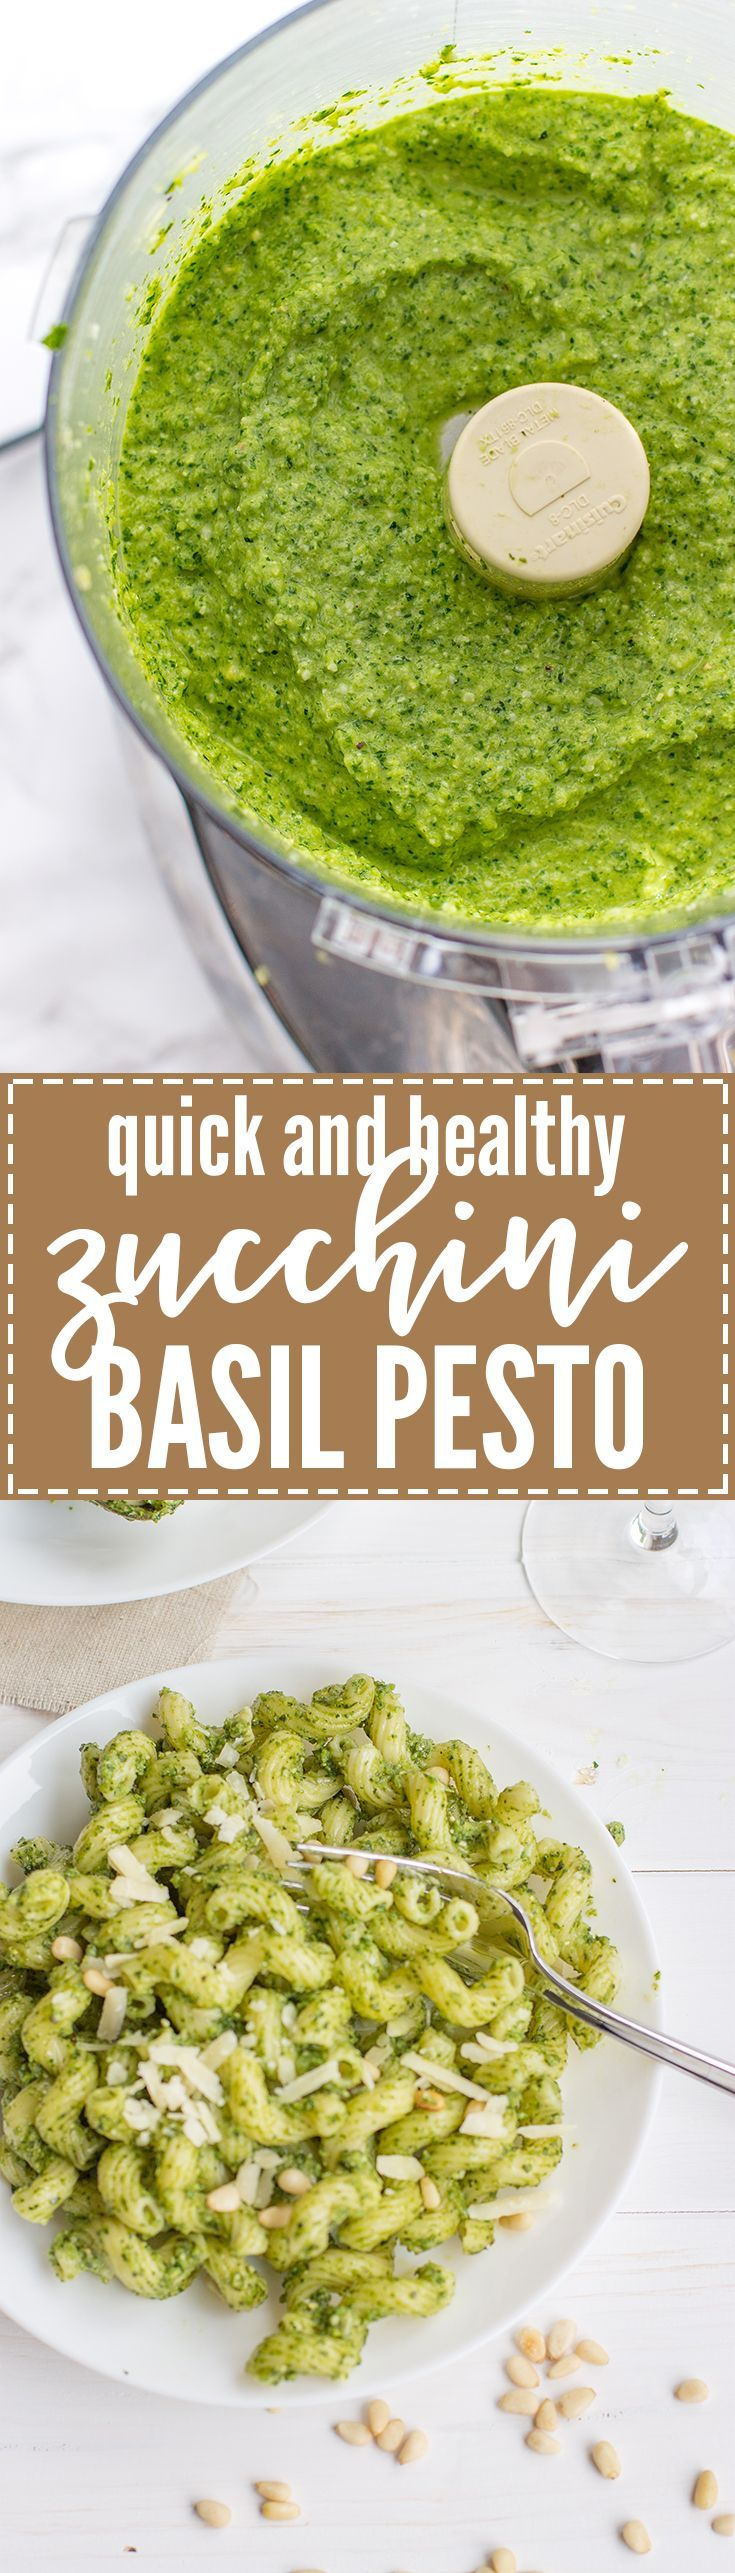 Quick, healthy zucchini basil pesto | A simple recipe for extra zucchini with spinach, parmesan and pine nuts. Toss with pasta for a fast, fresh vegetarian dinner. via @nourishandfete